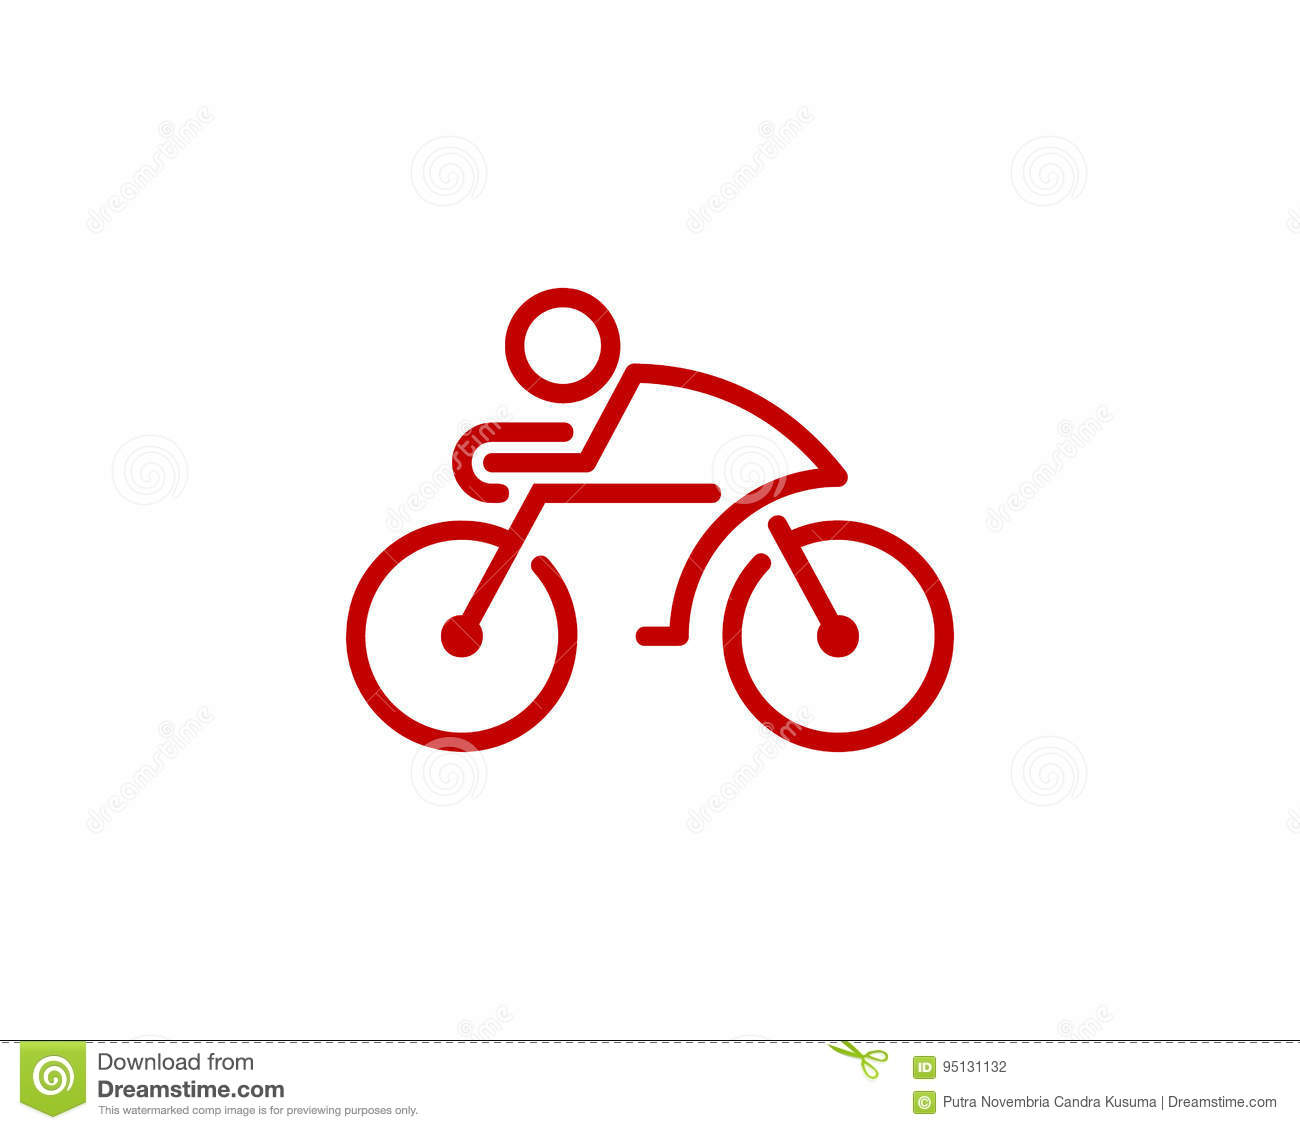 Bike cycle icon logo design element